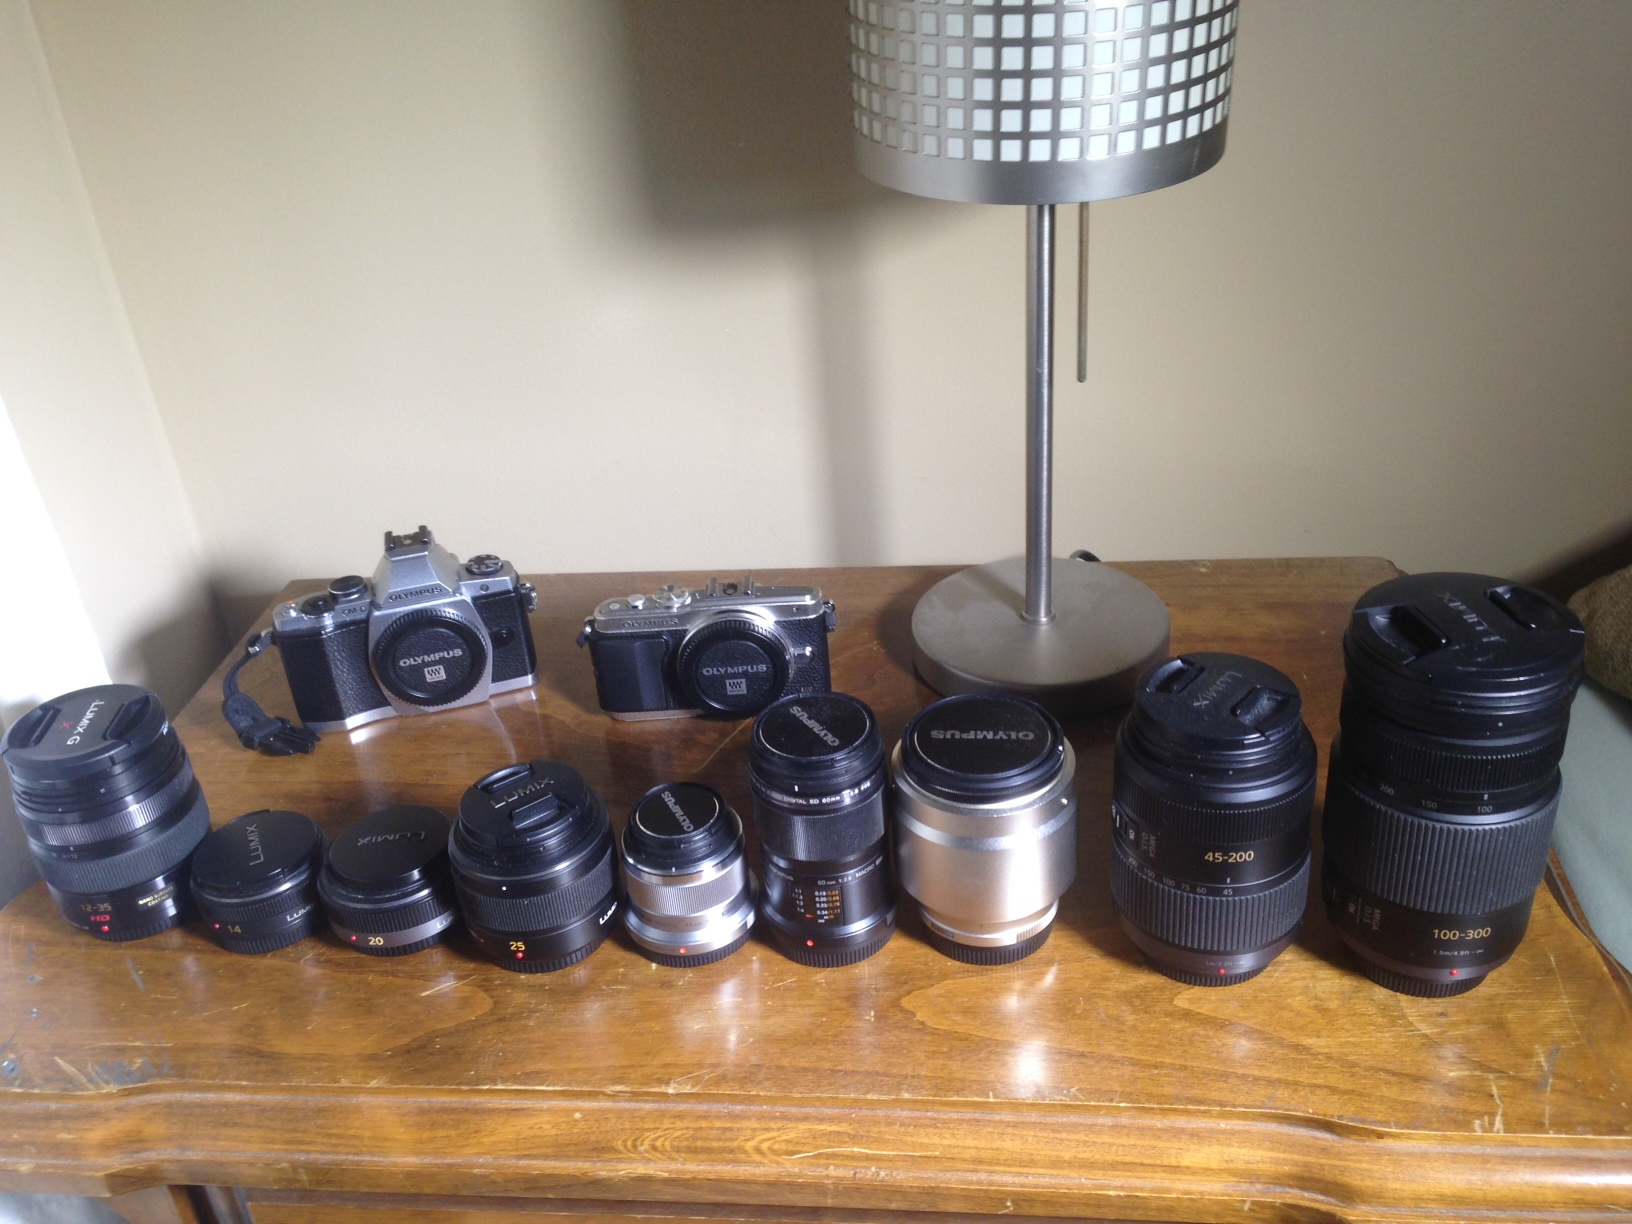 My current rig.  A decent setup, but please don't think I'm rich. :(  Lenses from left to right: P12-35mm/2.8, P14mm/2.5, P20mm/1.7, PL25mm/1.4, O45mm/1.8, O60mm/2.8, O75mm/1.8, P45-200mm, P100-300mm.  OMD and E-PL5 hanging out in the back.  Cheap Ikea light on right.